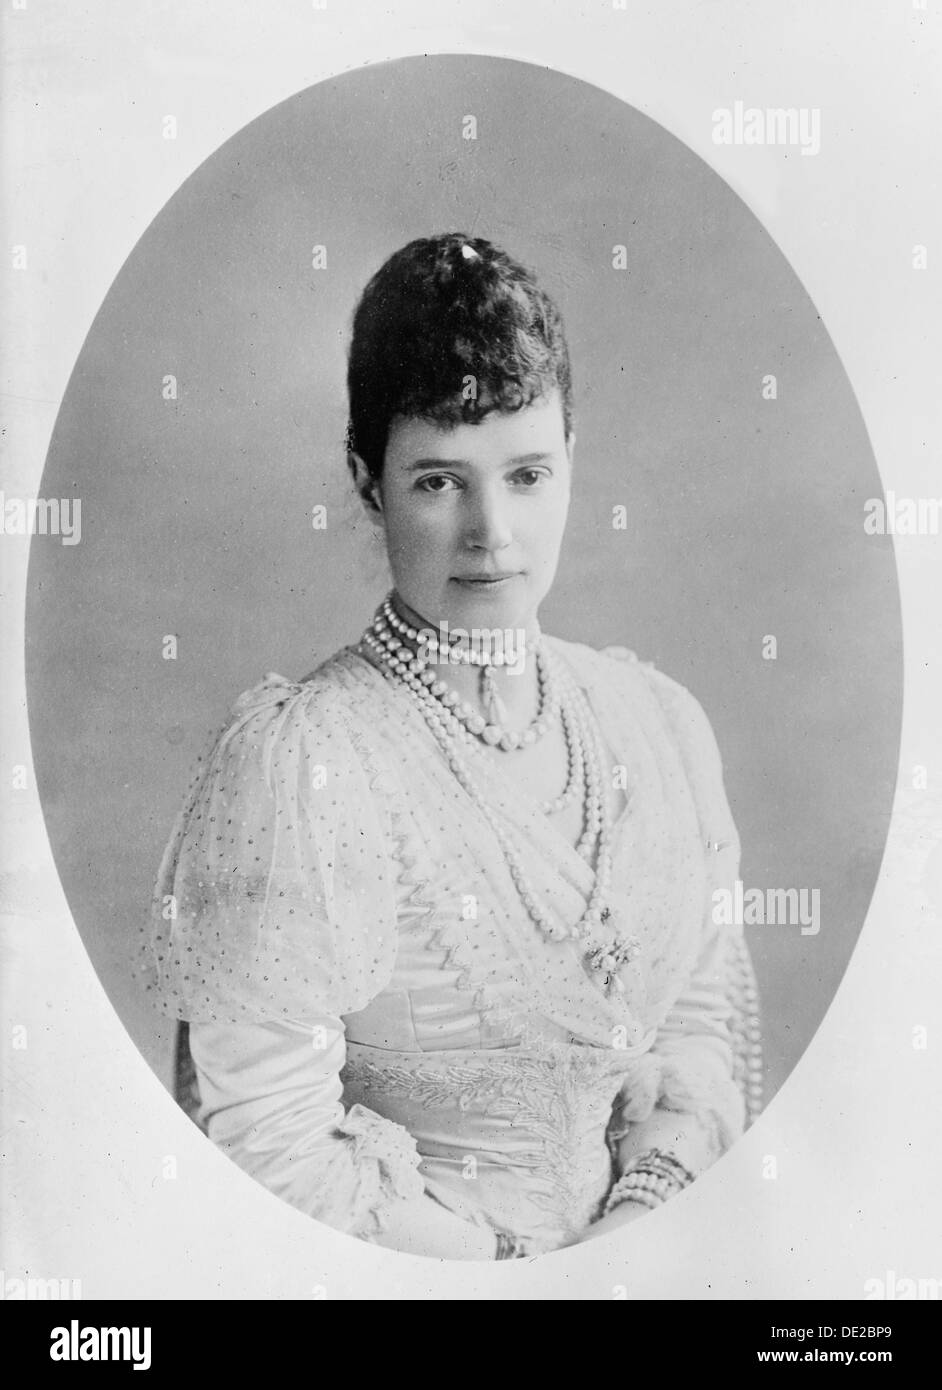 Dowager Empress Maria Feodorovna of Russia, 1911. Artist: Anon - Stock Image